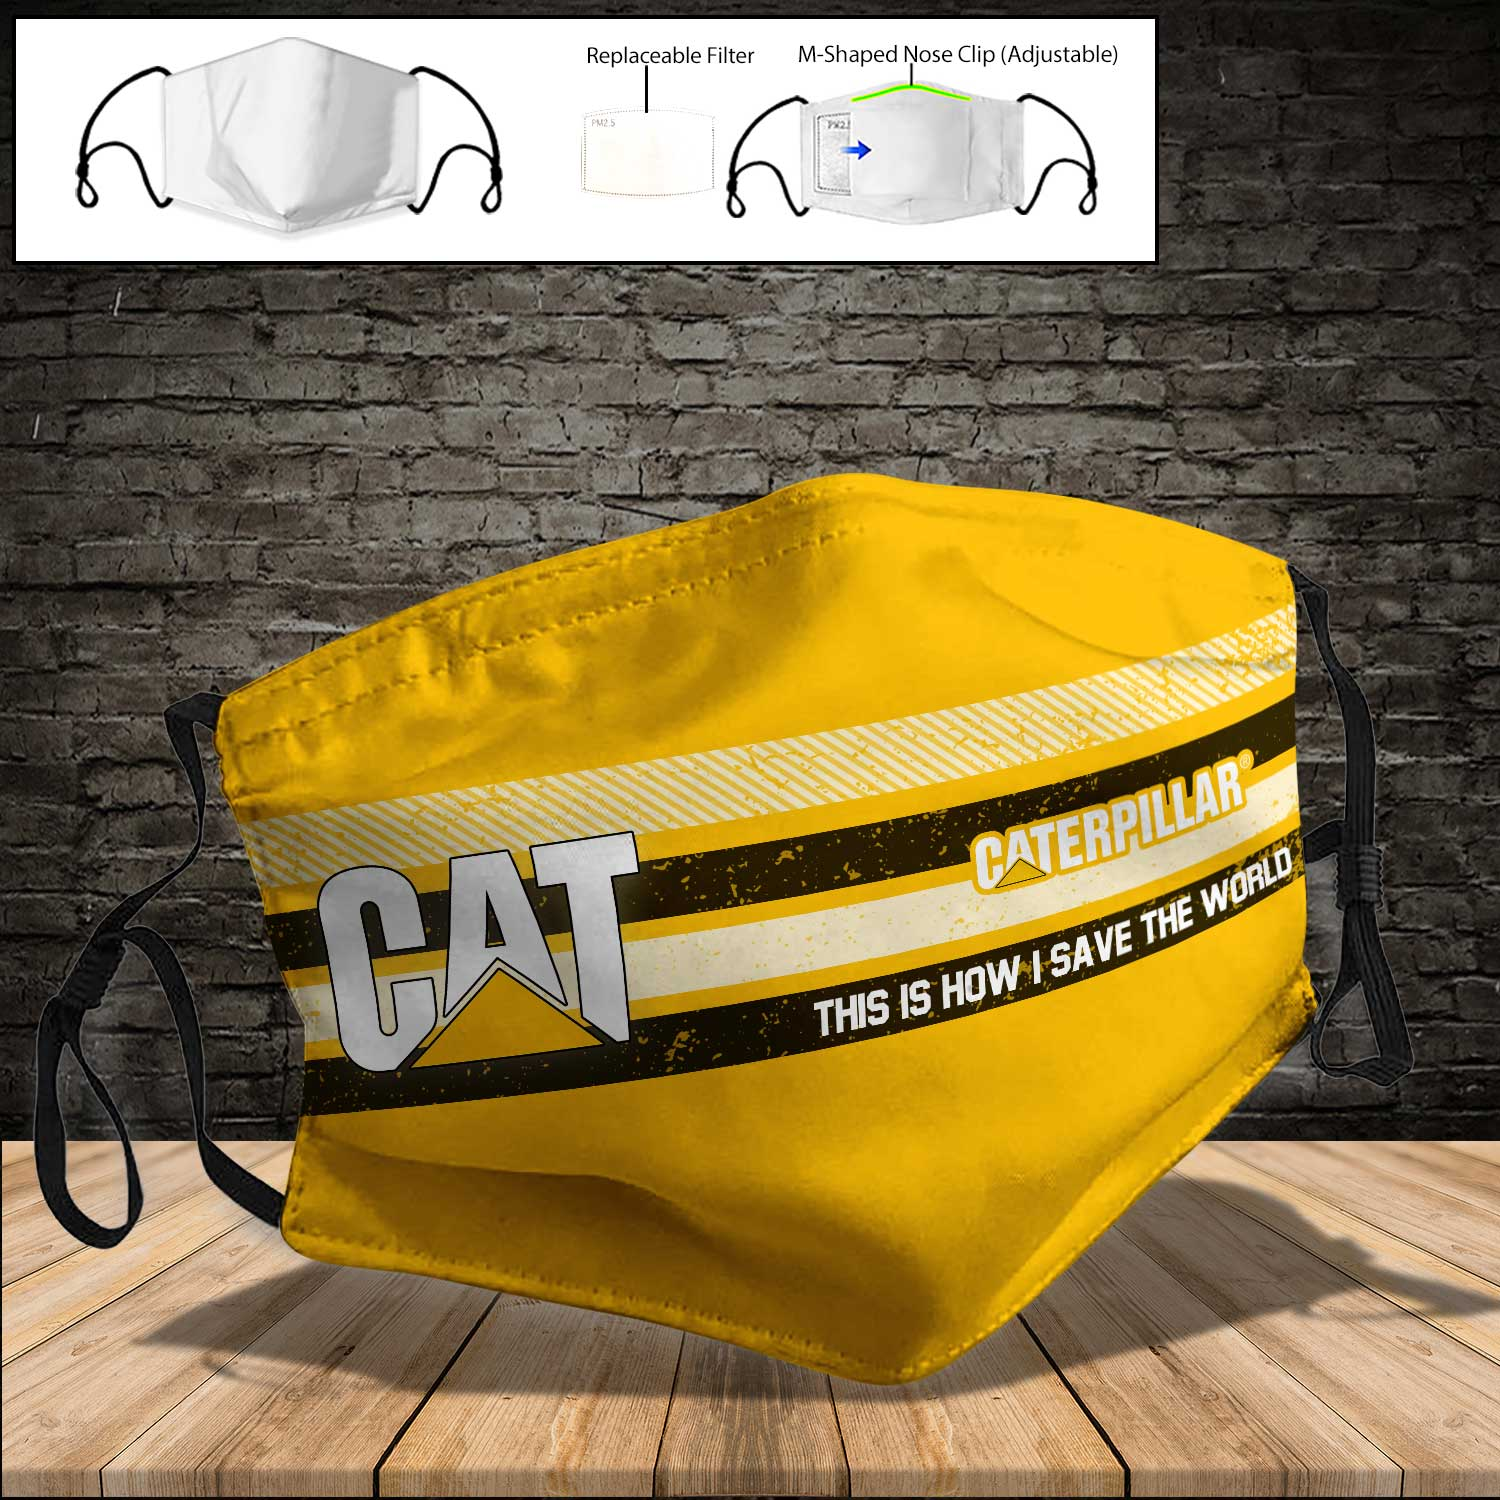 Caterpillar inc this is how i save the world full printing face mask 3